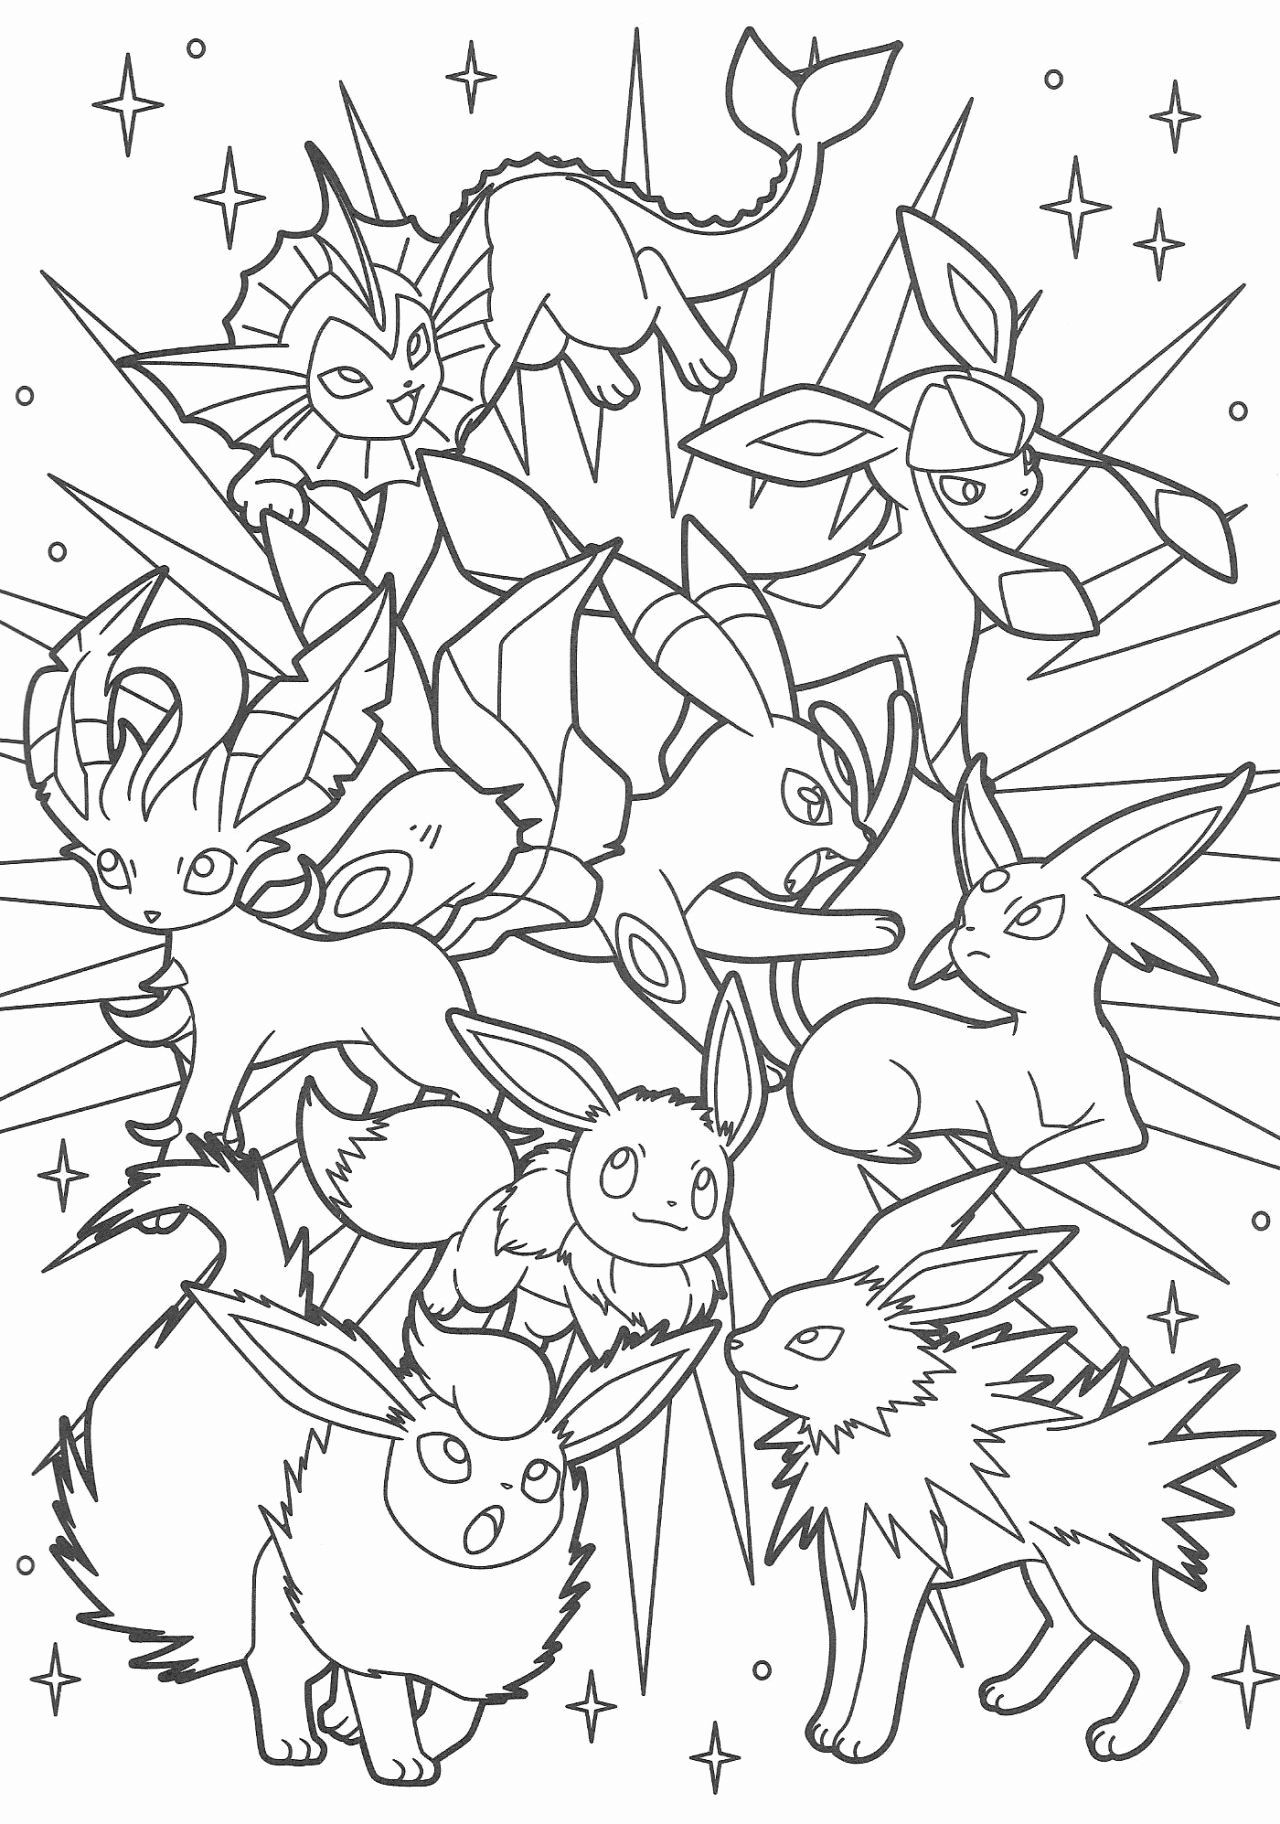 Eevee Evolutions Coloring Page Lovely Pokemon Scans From Pacificpikachu S Collection Pikachu In 2020 Pokemon Coloring Sheets Pokemon Coloring Pages Pokemon Coloring